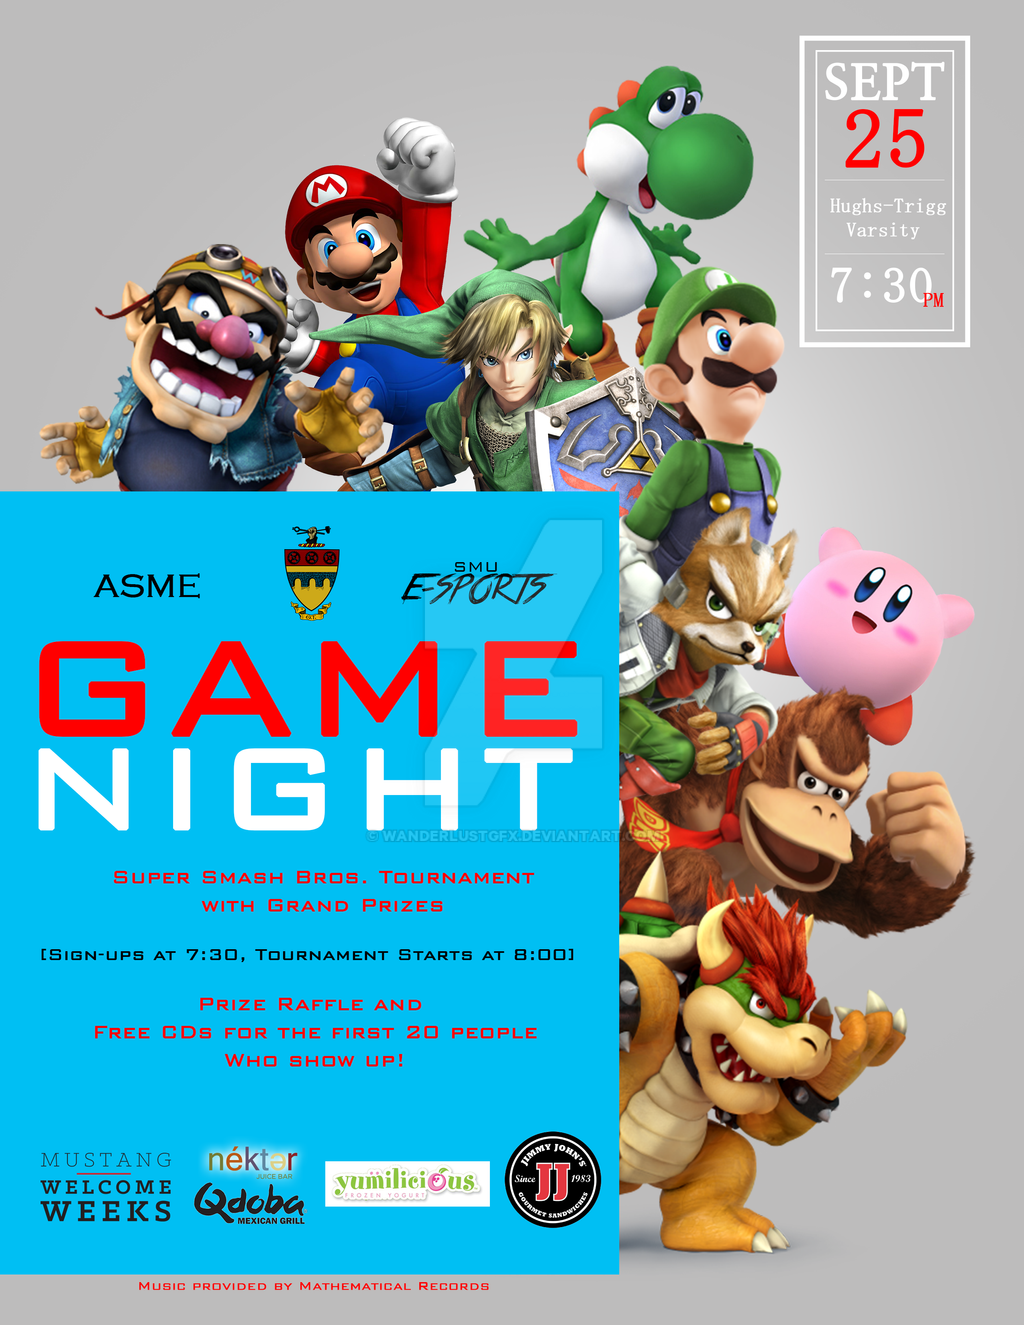 Poster design game - Game Night Poster Design By Wanderlustgfx Game Night Poster Design By Wanderlustgfx